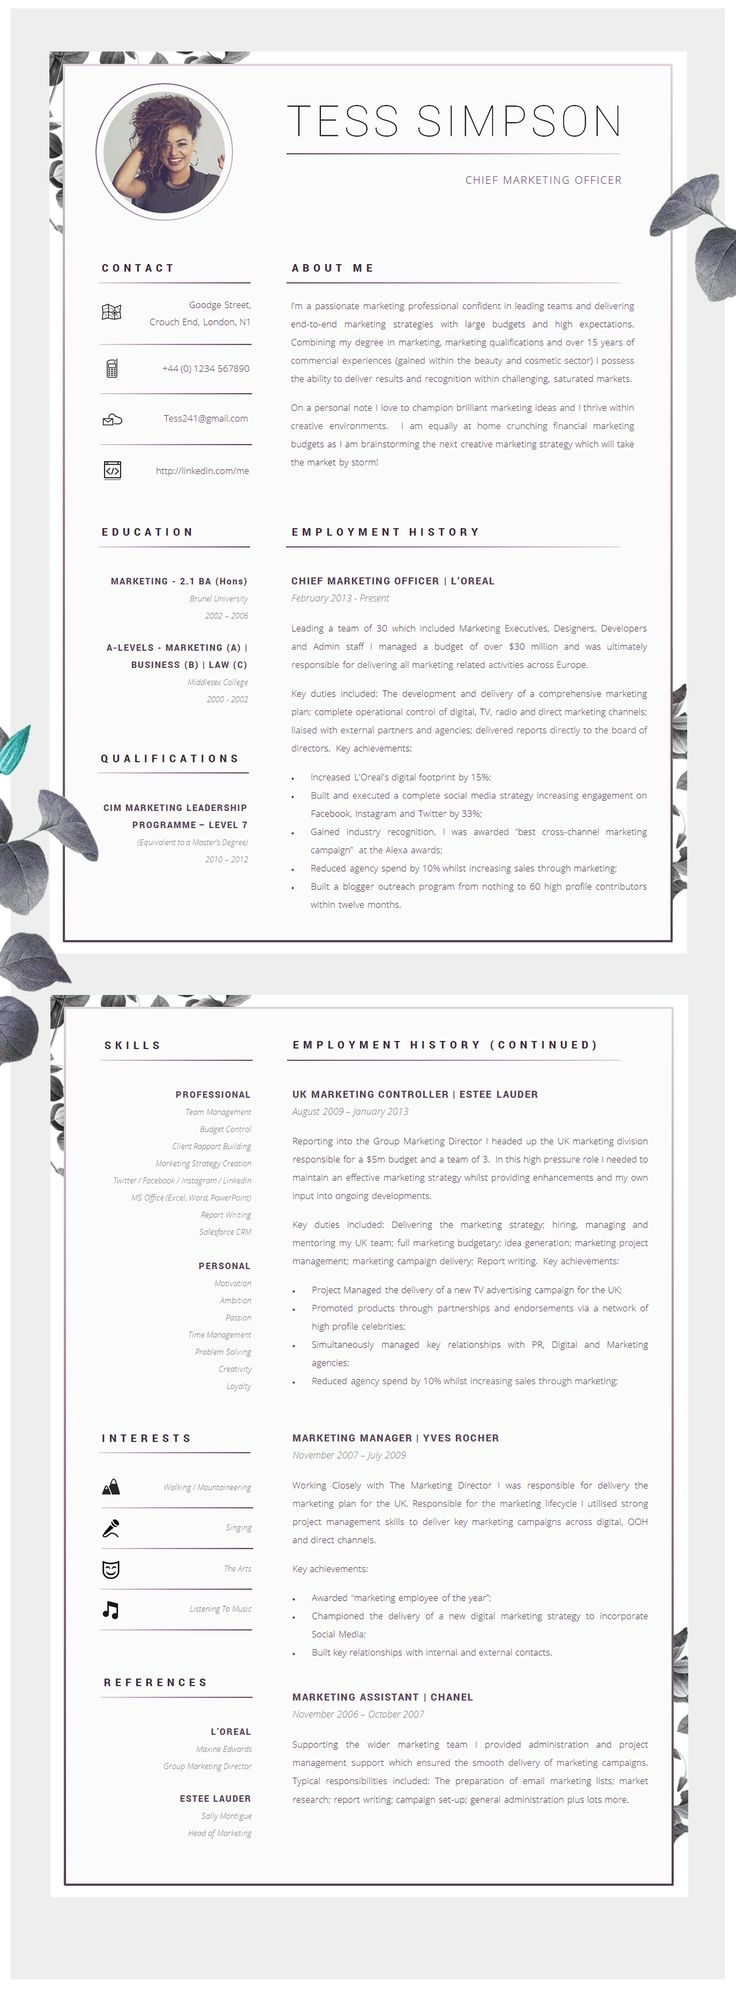 best ideas about fashion resume on pinterest  job info job  also cv template  creative resume template  two page professional cv  coverletter  advice  printable for word  the beauvoir creative cv